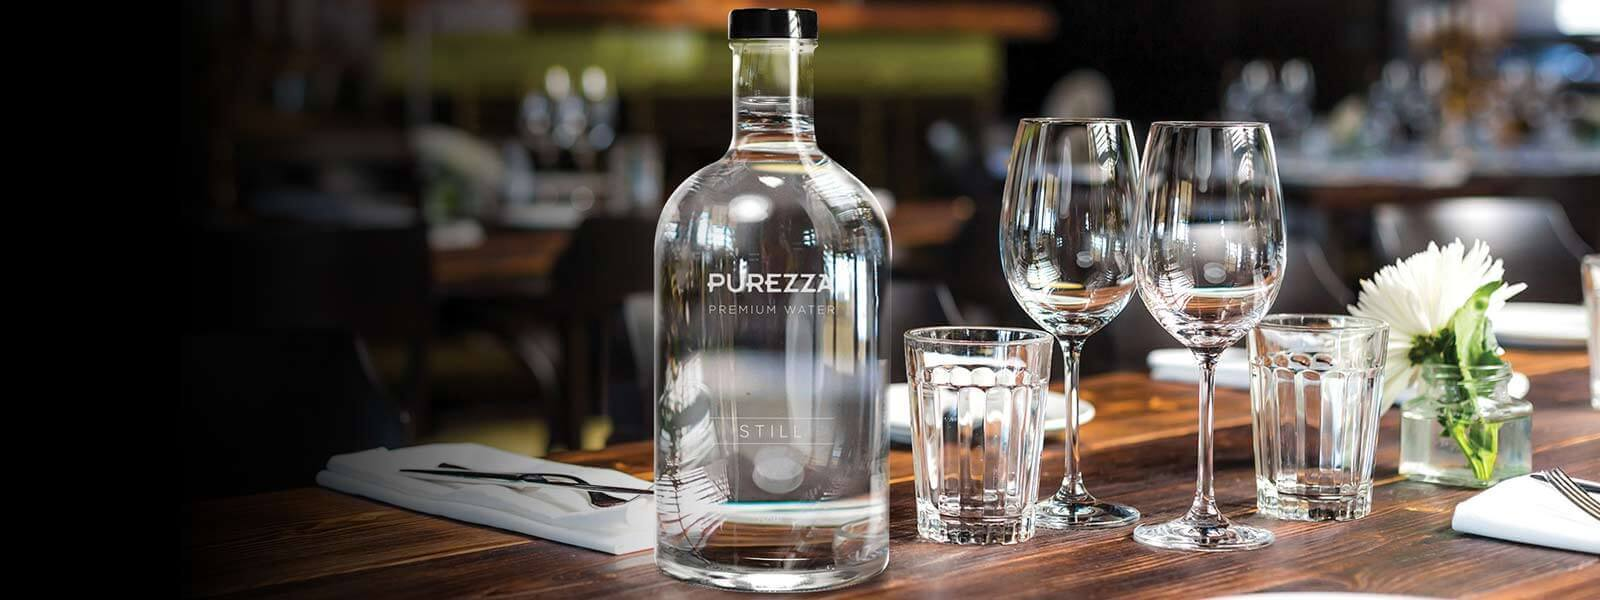 Fabulous Premium Chilled Sparkling Water On Tap Purezza Home Interior And Landscaping Ferensignezvosmurscom